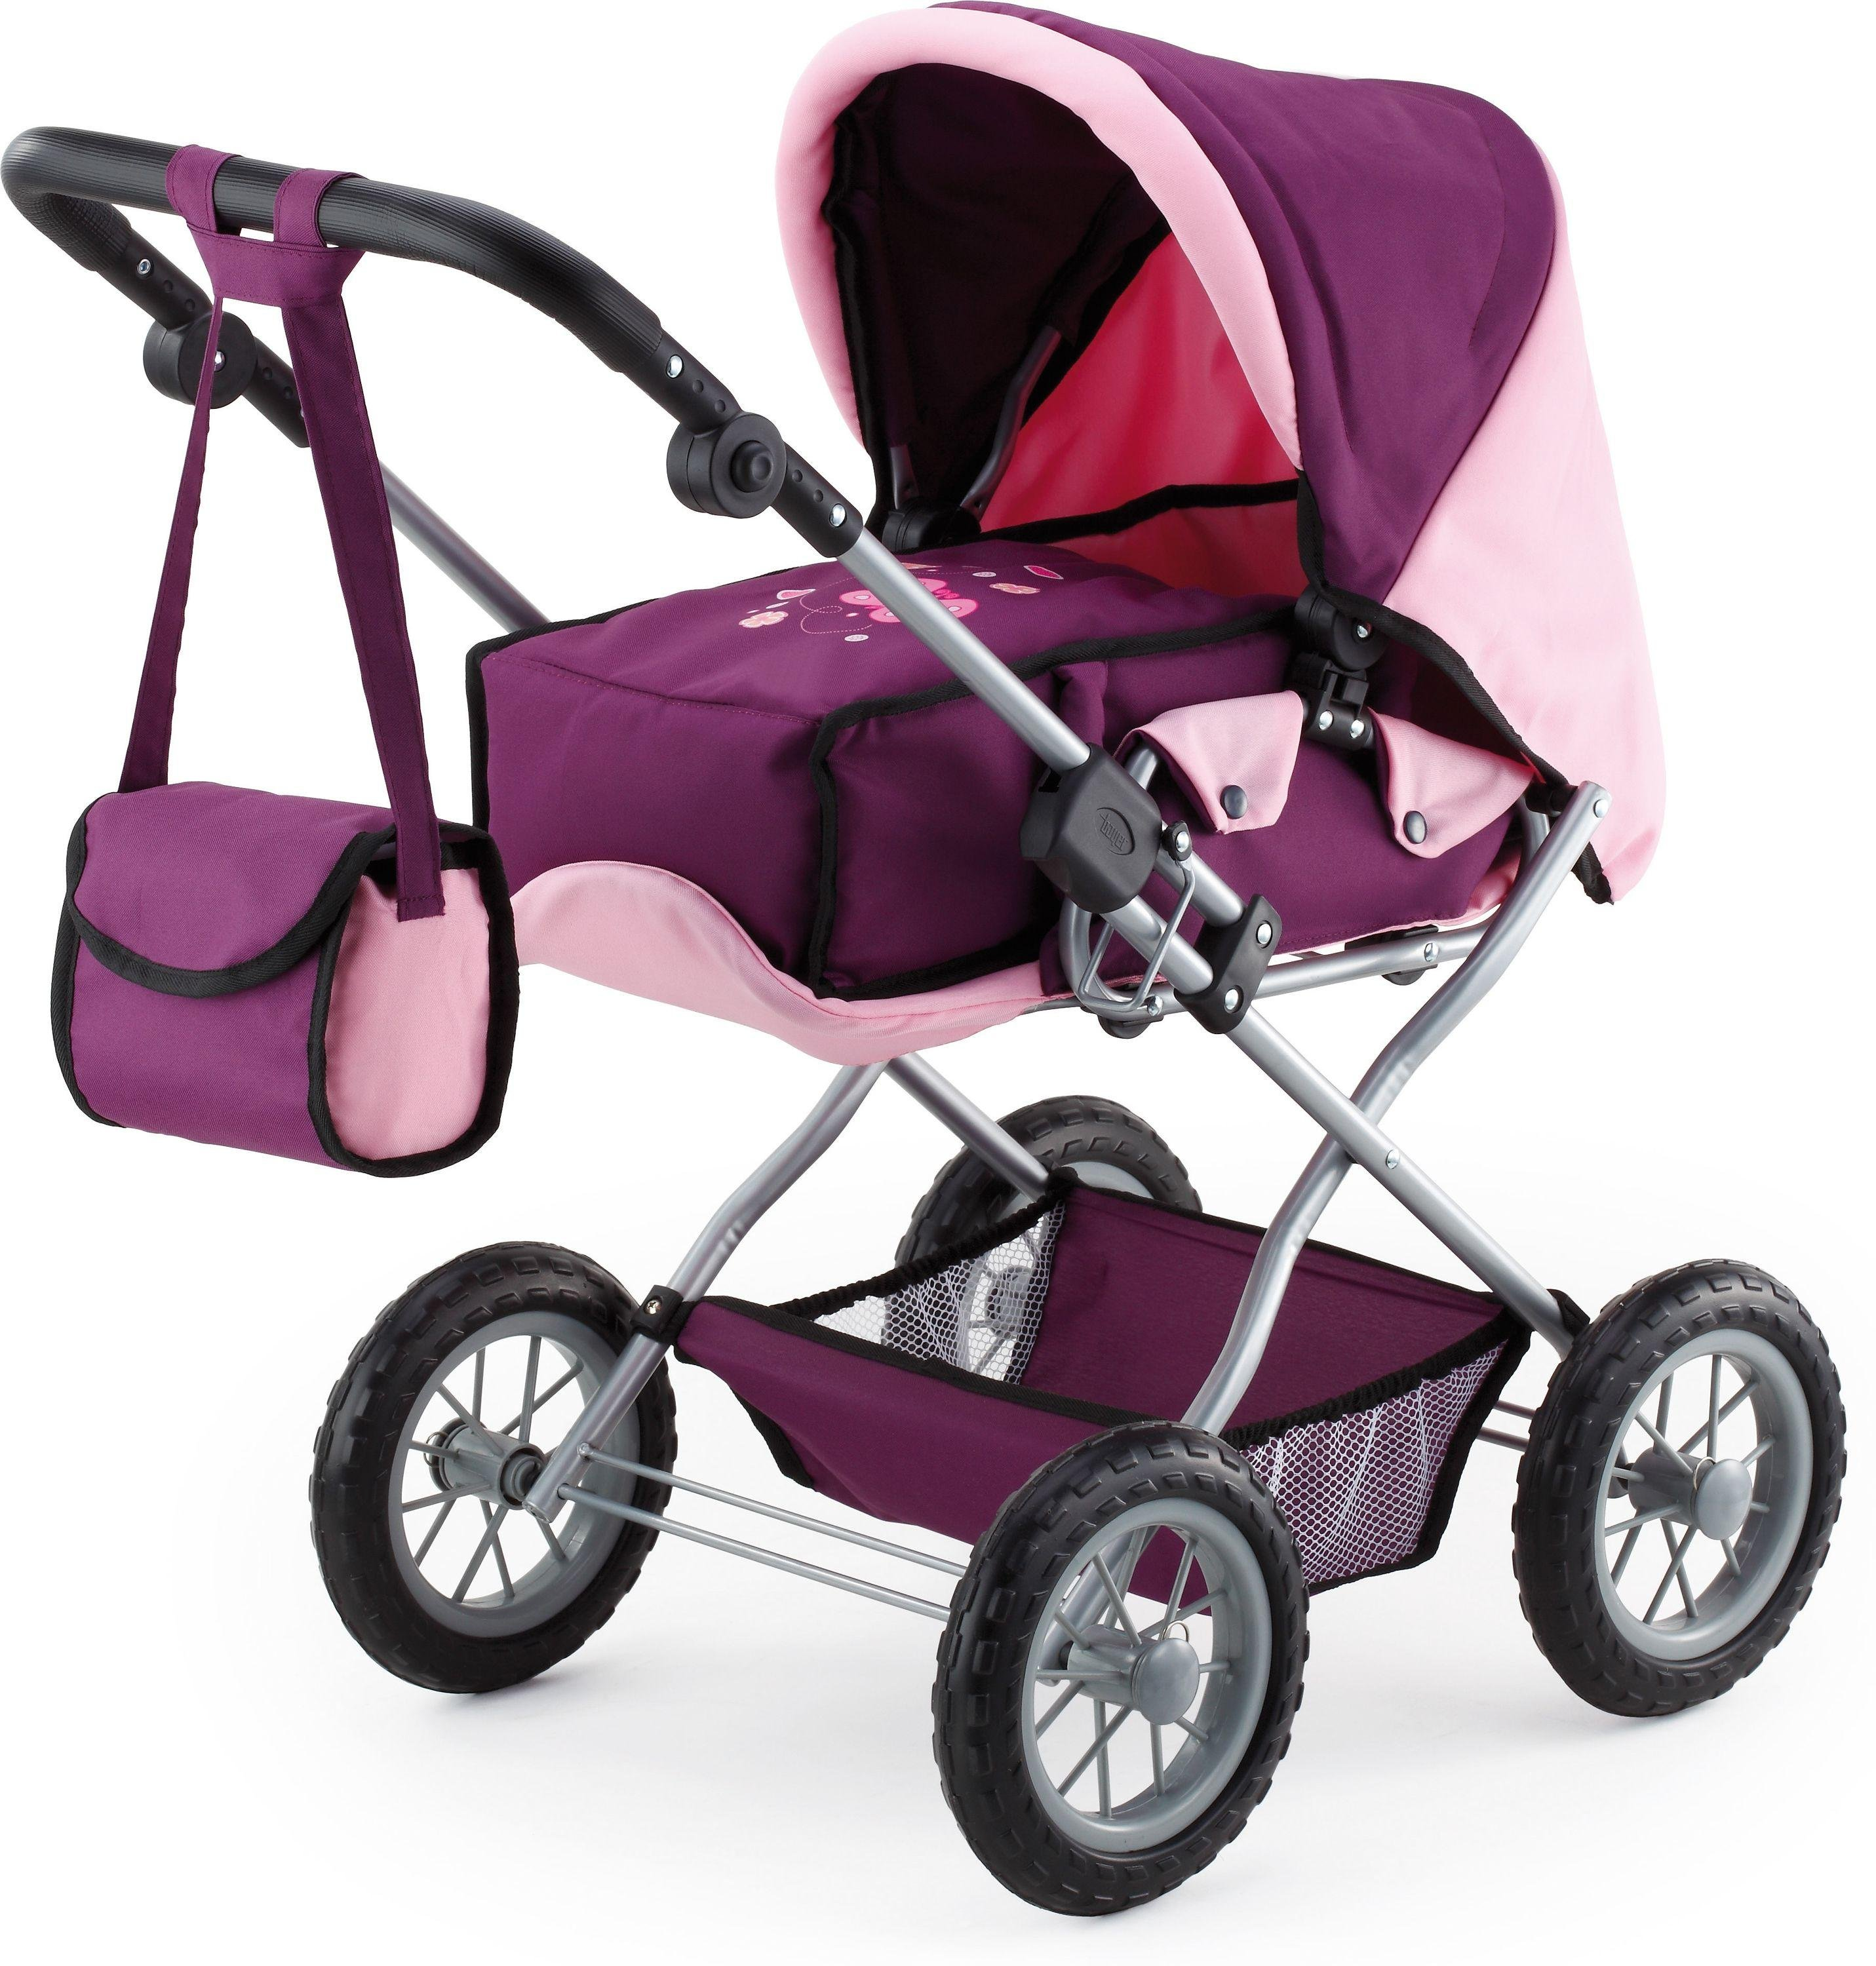 Image of Bayer - Combi Grande Doll's Pram - Plum